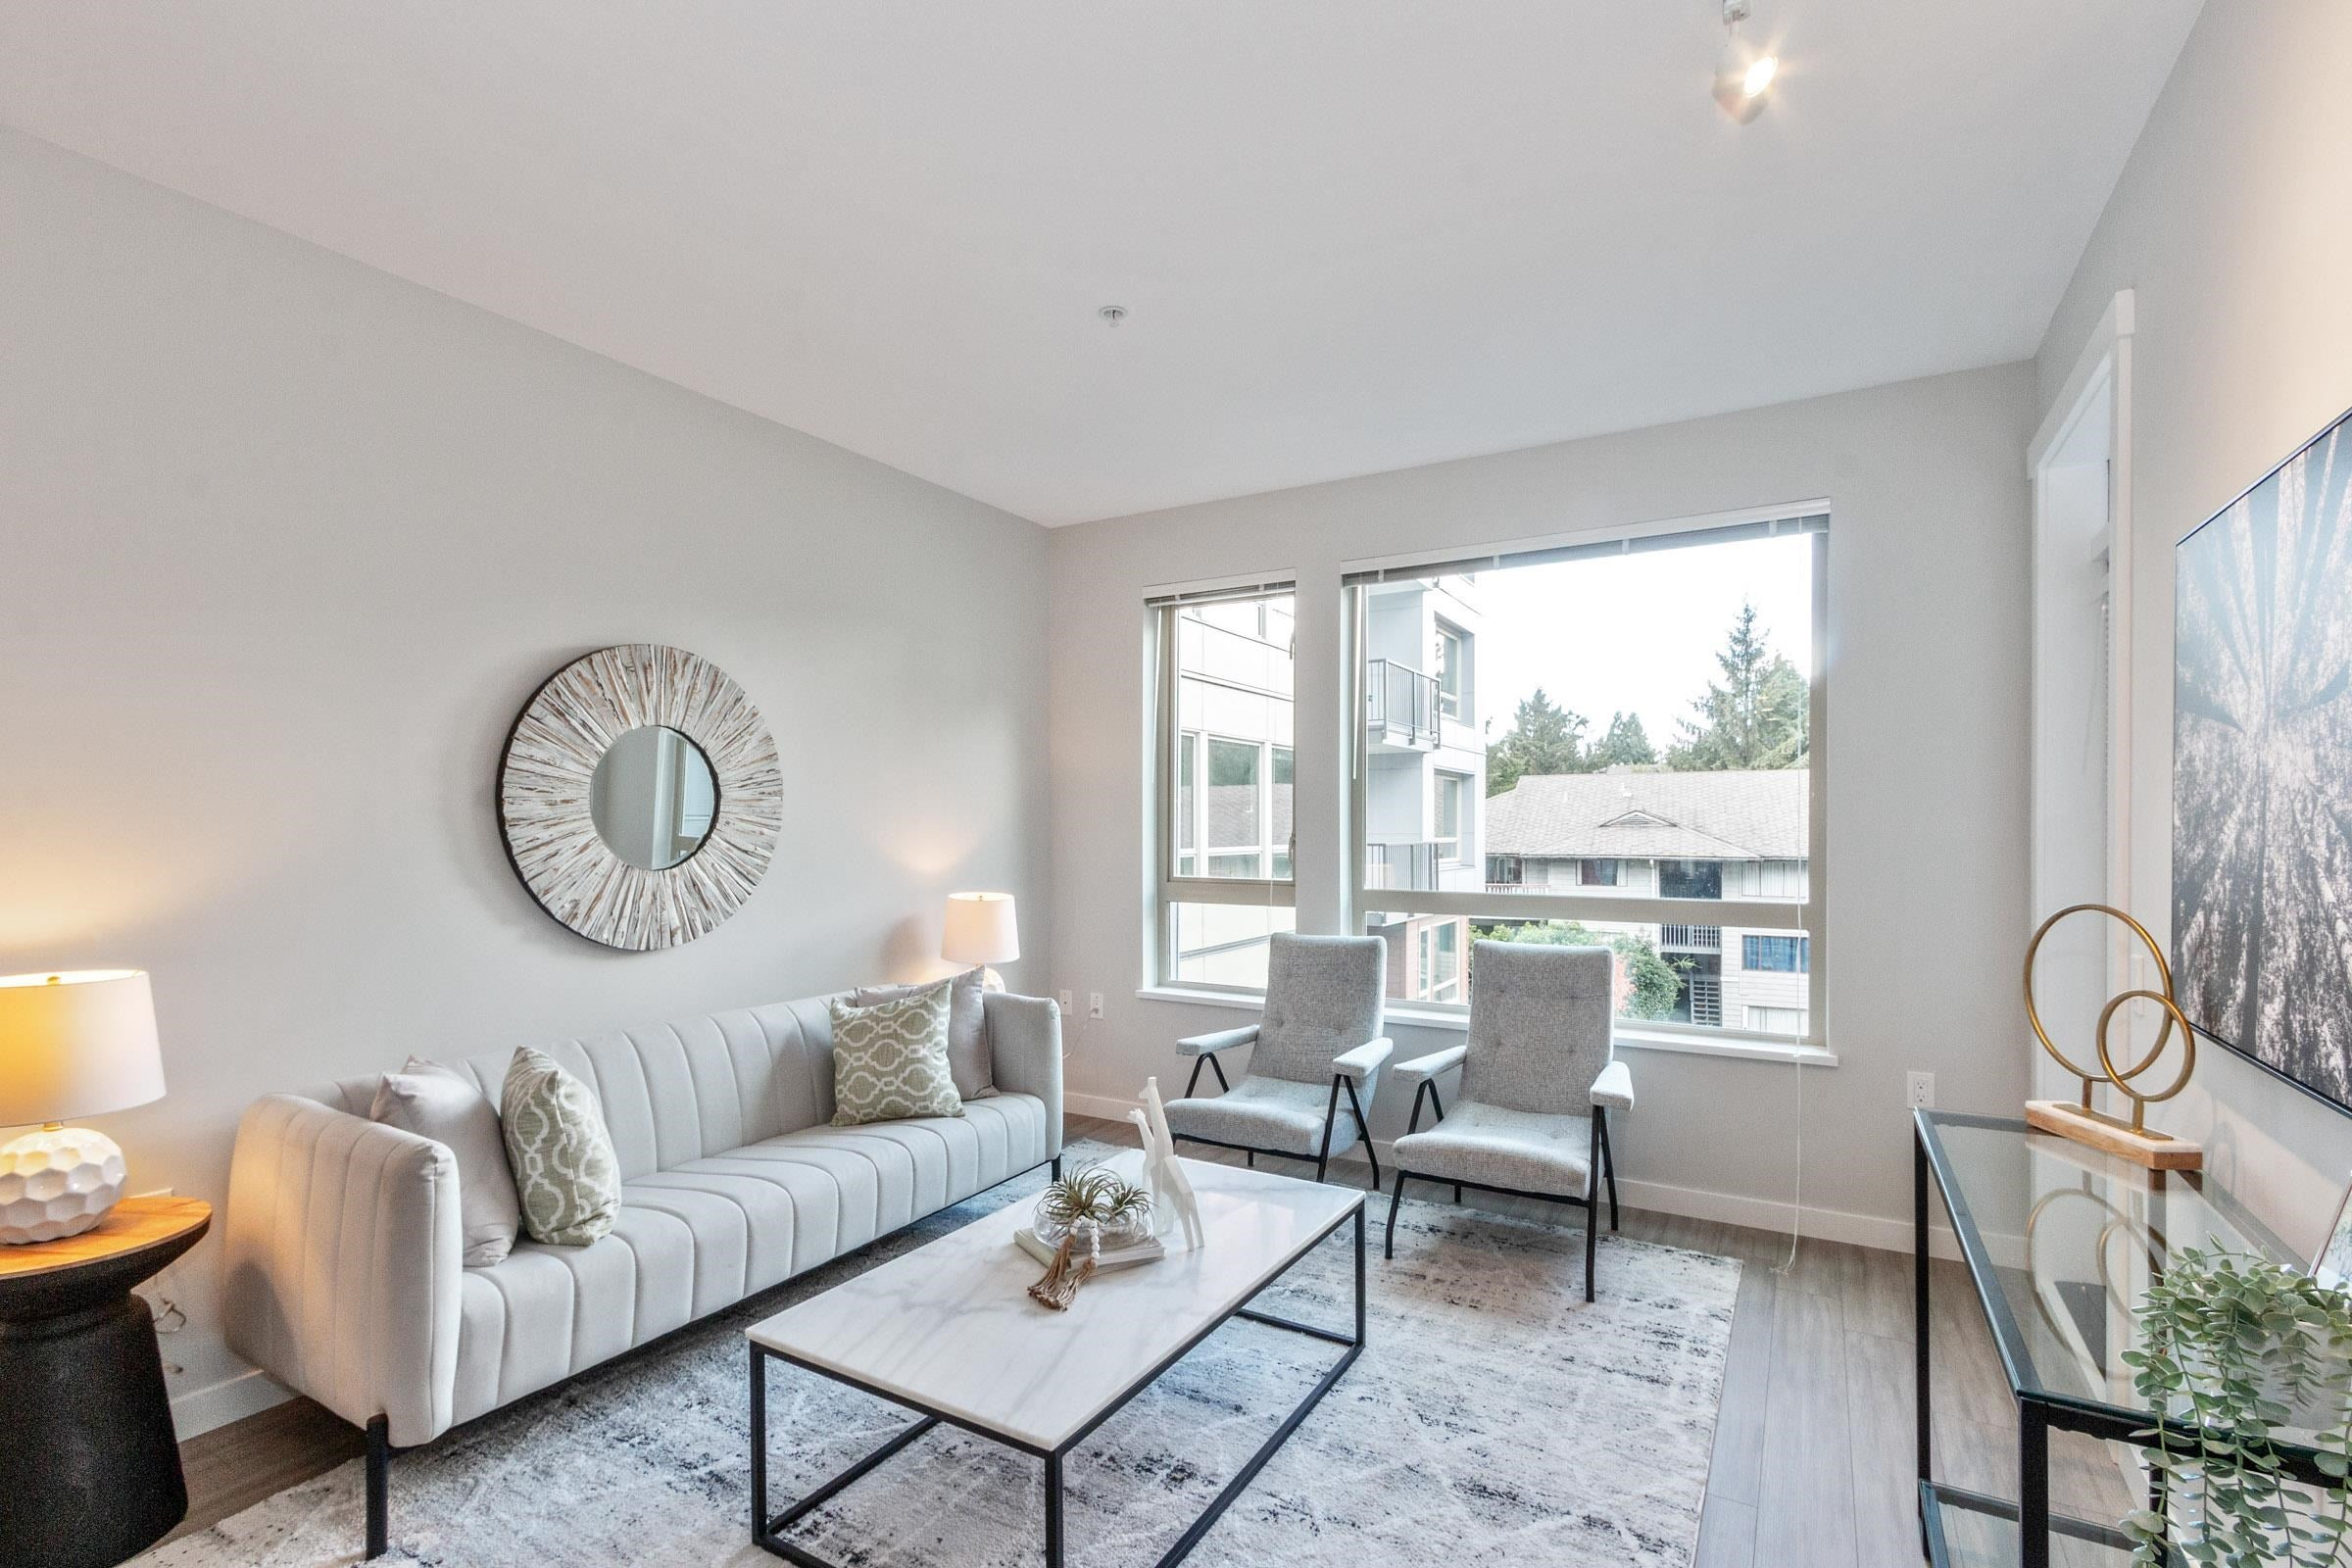 316 2651 LIBRARY LANE - Lynn Valley Apartment/Condo for sale, 2 Bedrooms (R2622878) - #3